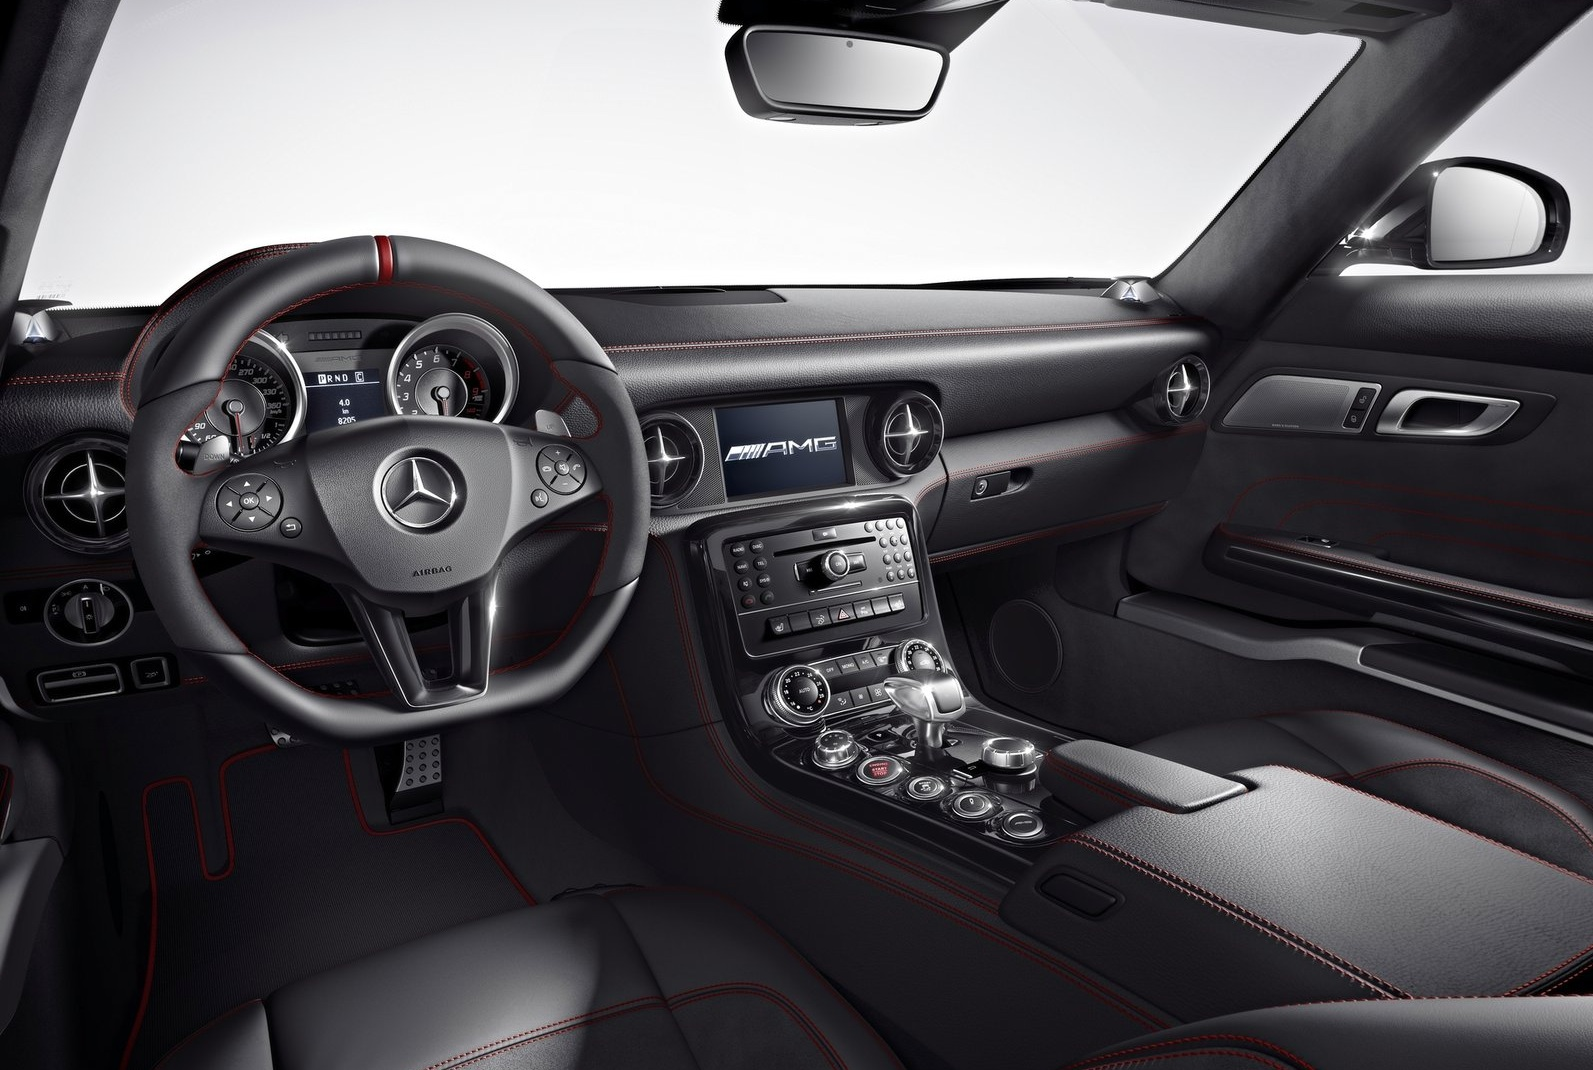 2013 mercedes benz sls amg gt coupe interior egmcartech for Mercedes benz interiors